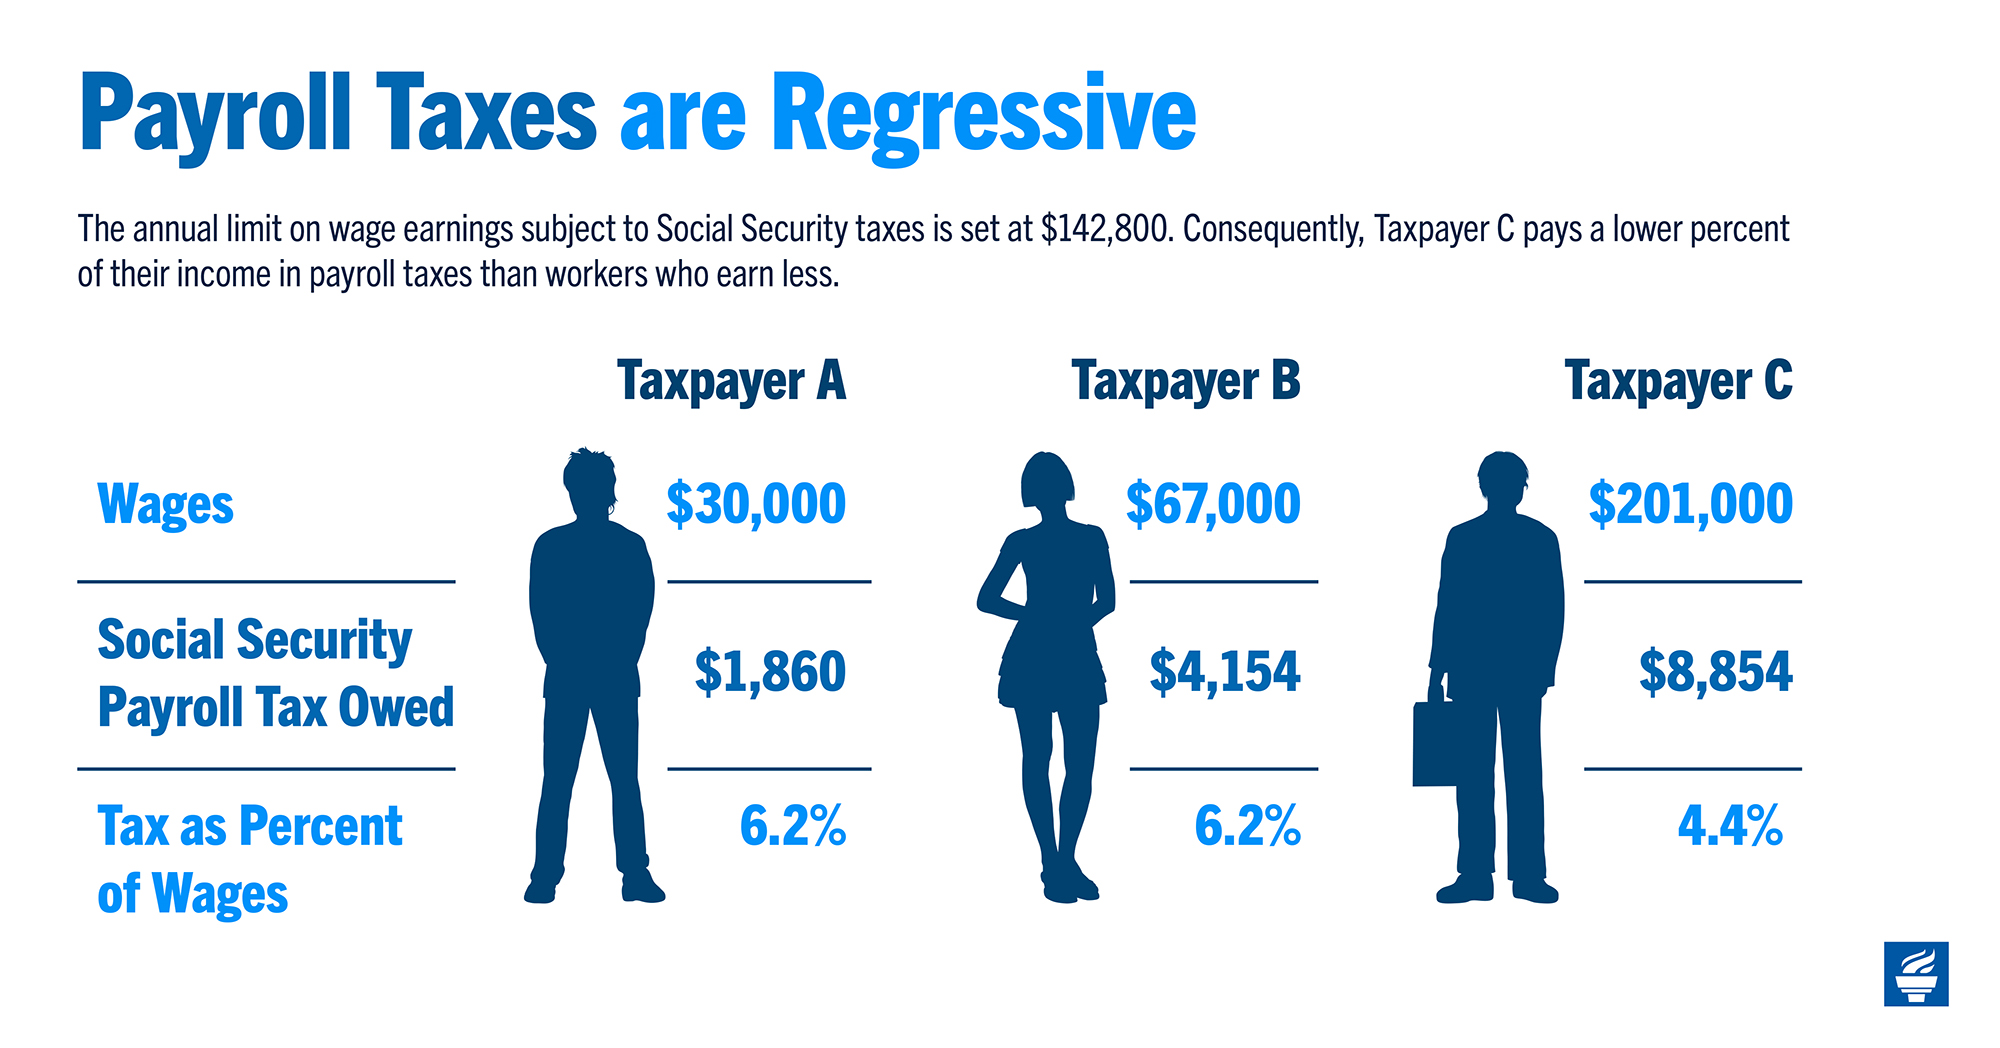 Payroll Taxes are Regressive